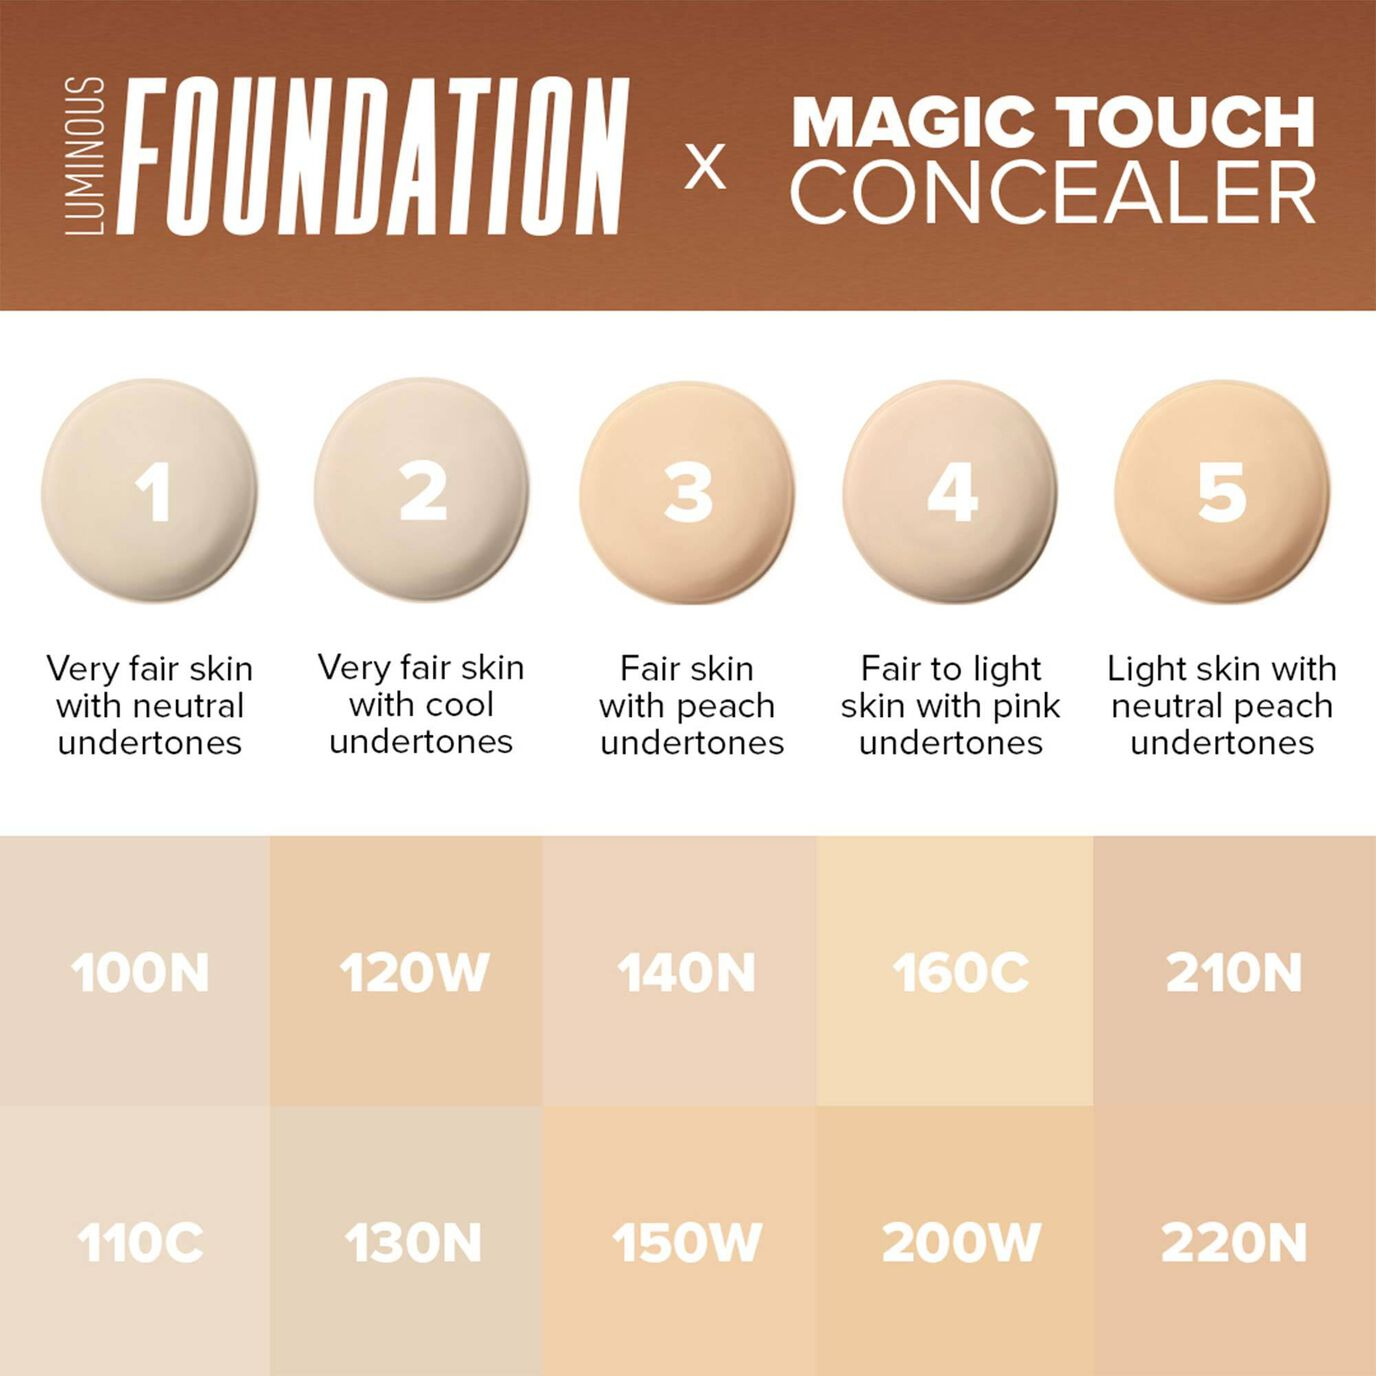 Magic Touch Concealer - Shade 5